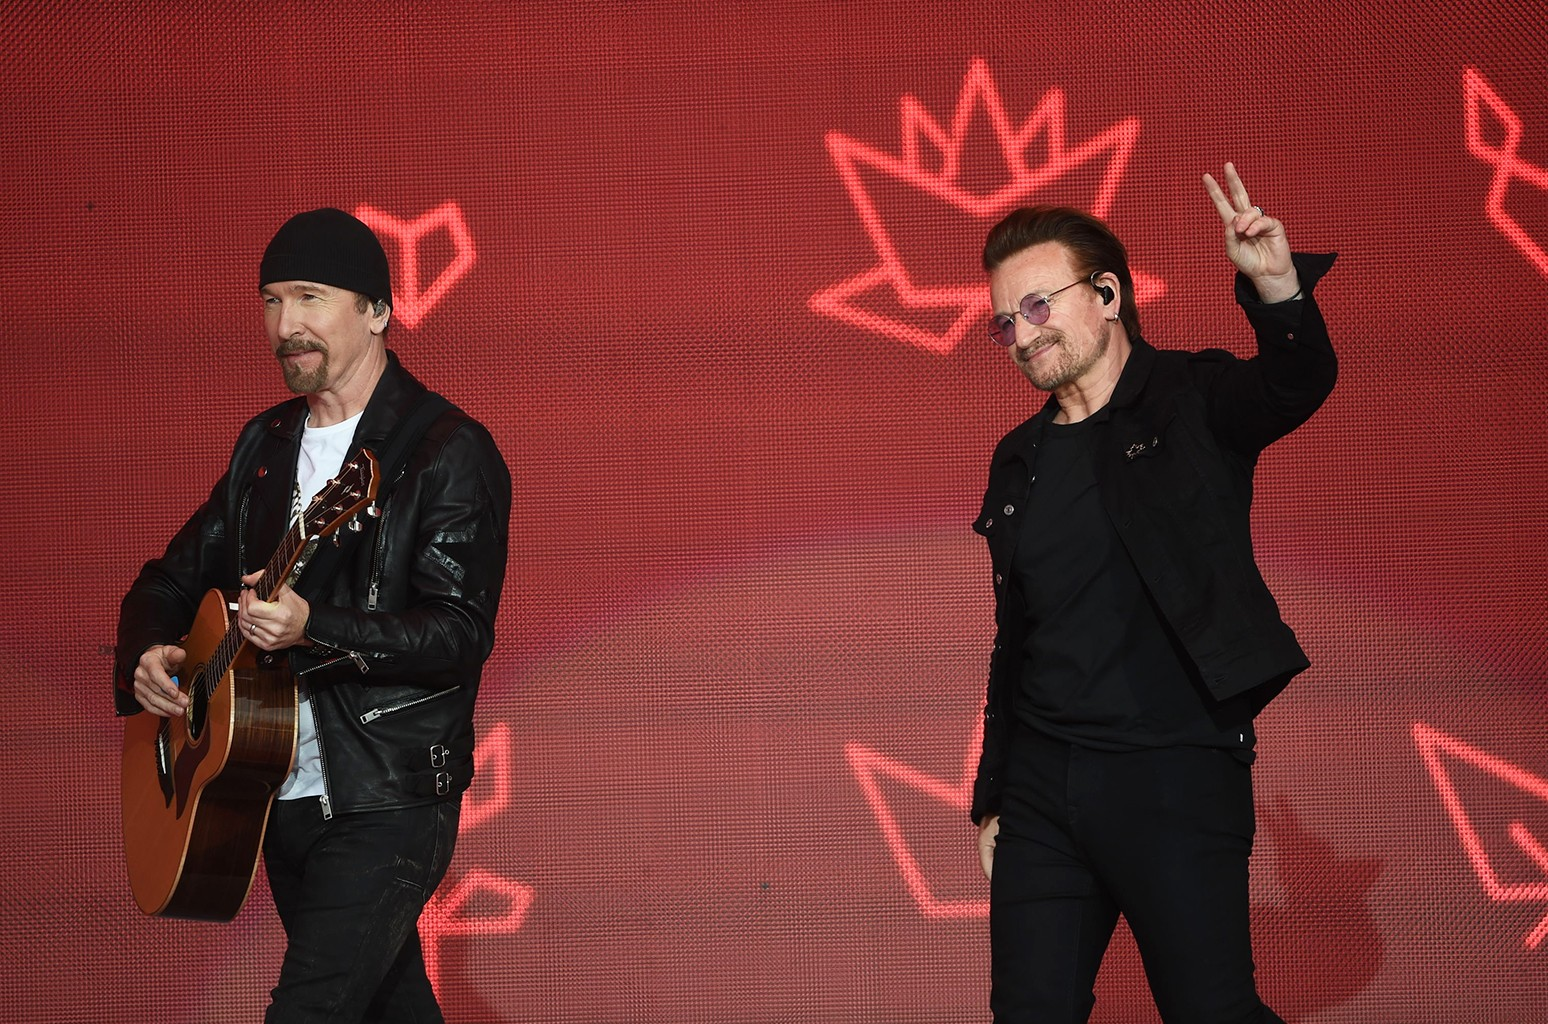 Bono and The Edge of U2 on stage prior to meeting the Prince of Wales during Canada Day Celebrations on Parliament Hill, Ottawa.